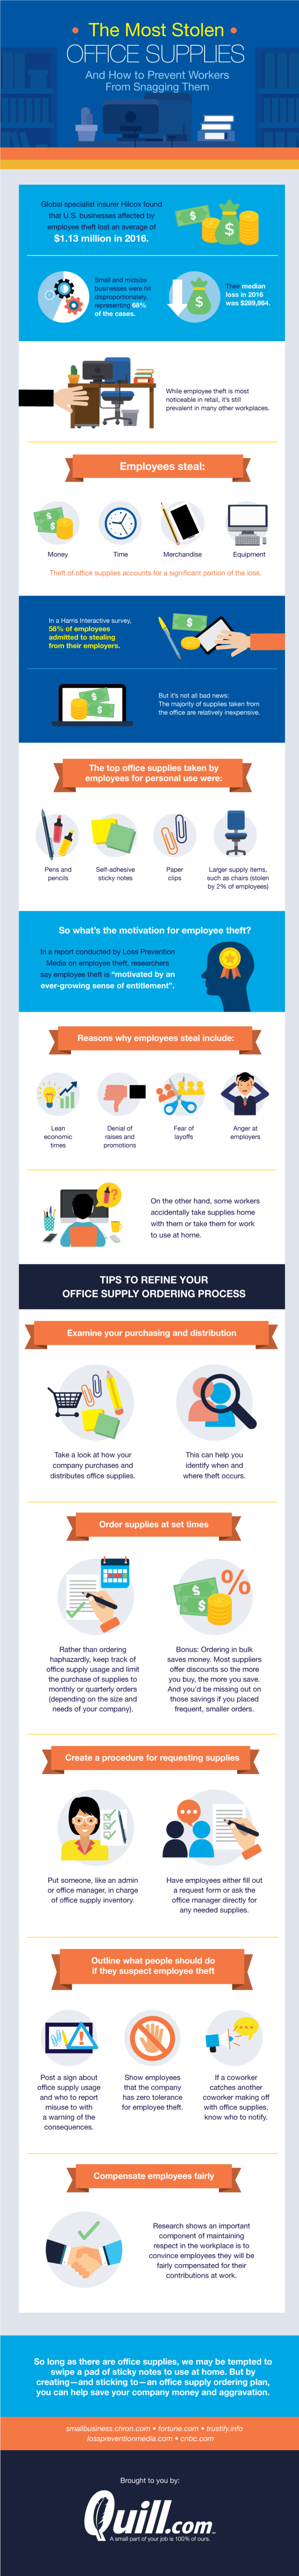 The most stolen office supplies: And how to prevent office supply theft